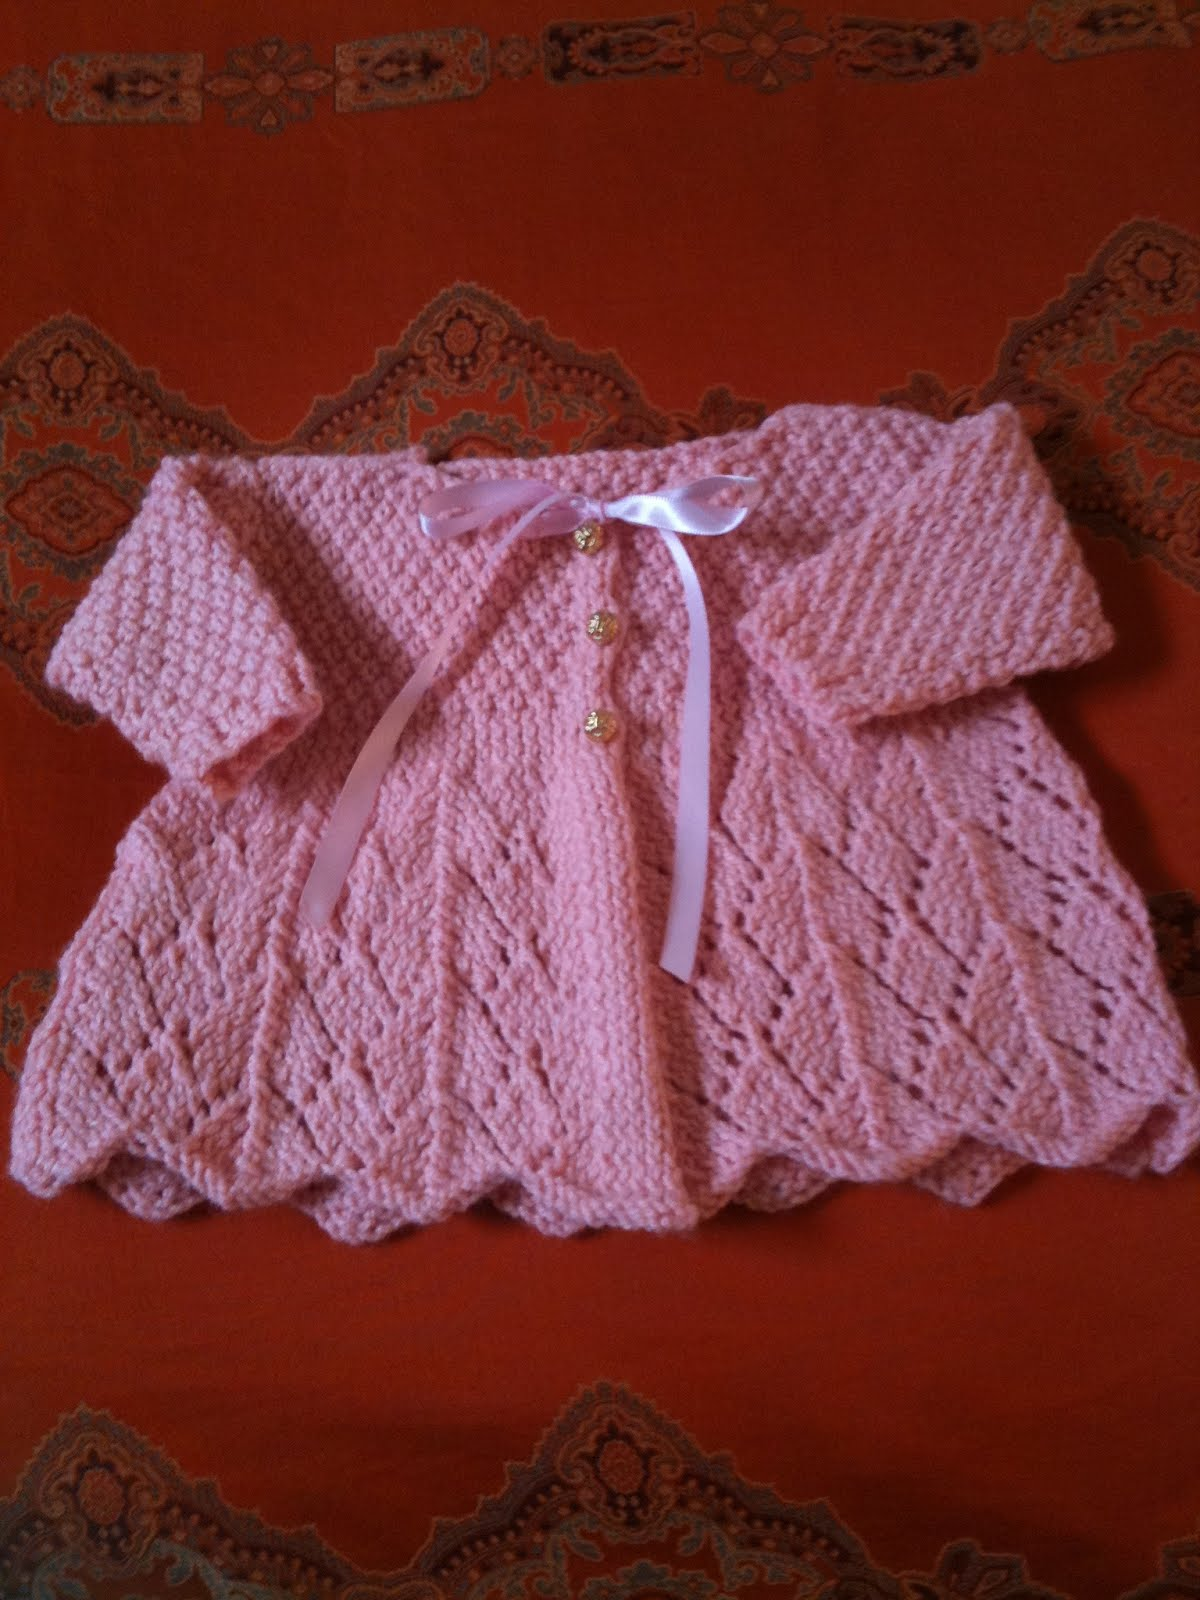 Knitting Pattern Baby Cardigan Newborn : La Dolce Duchessa: Lace Baby Sweater